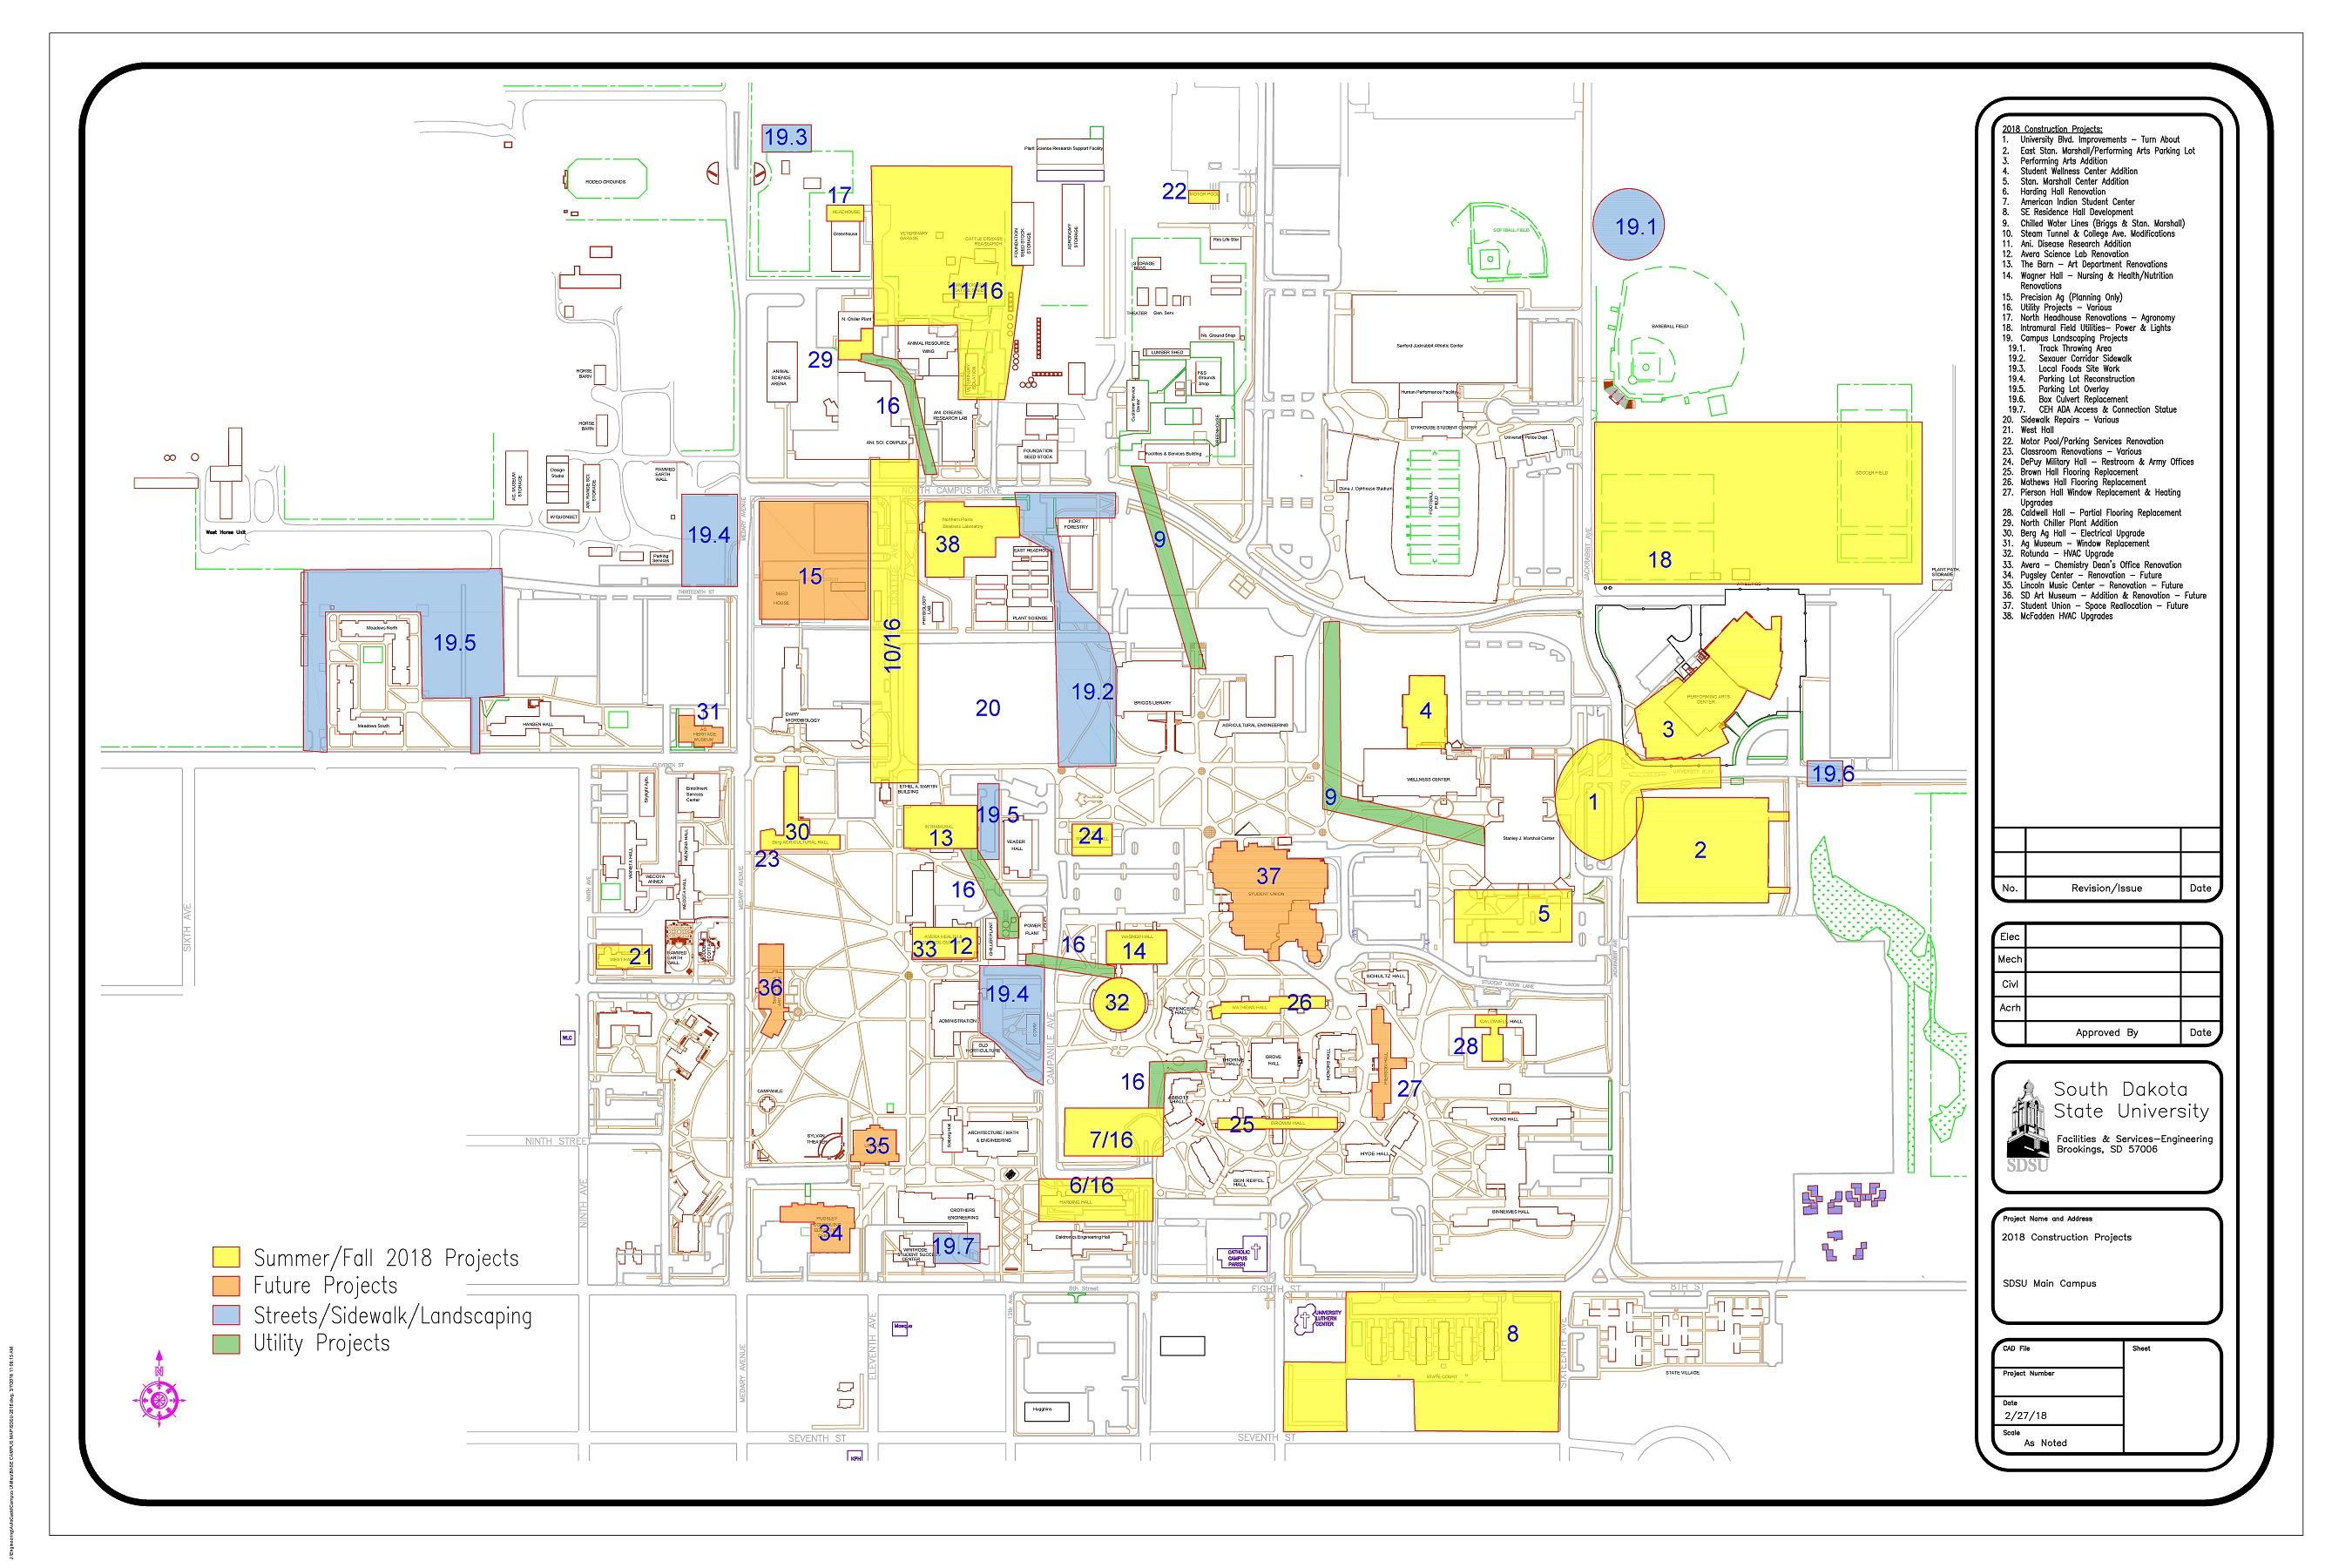 Project Map | South Dakota State University on ndsu map, csu san marcos map, long beach city college map, wright state university campus map, san francisco state university campus map, claremont map, ssu map, west chester university campus map, sjsu map, usd map, mesa college map, north park map, northwestern map, north dakota state university campus map, uc riverside map, san diego map, txst map, texas a&m map, wcu map, usfca map,